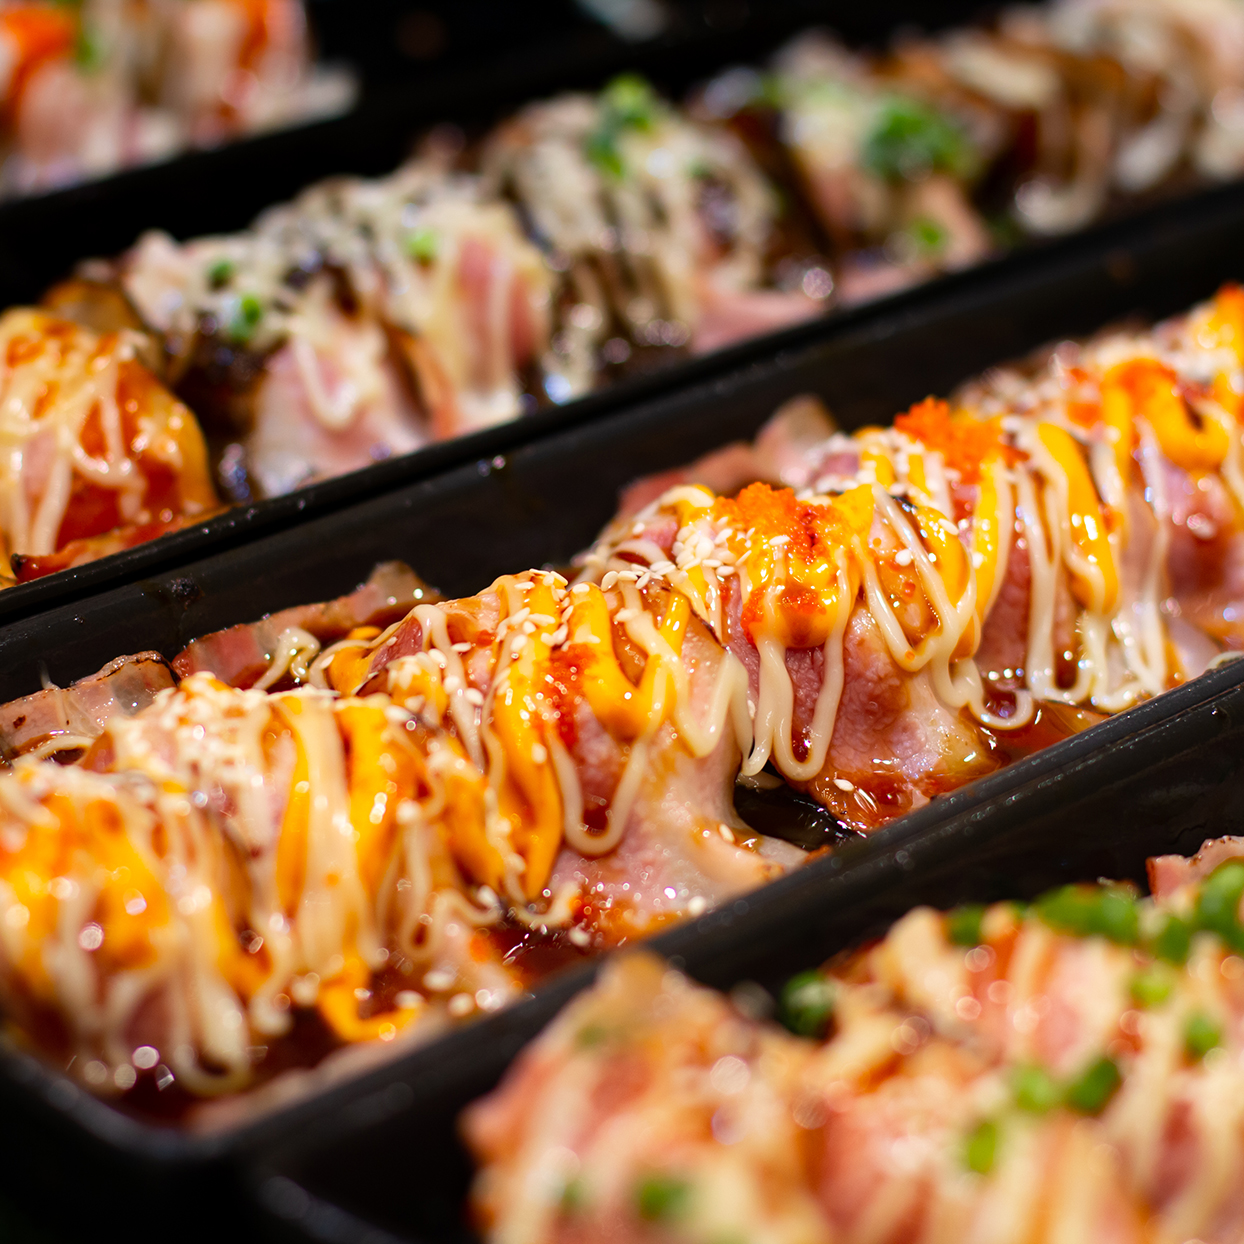 Sushi rolls drizzled with mayo